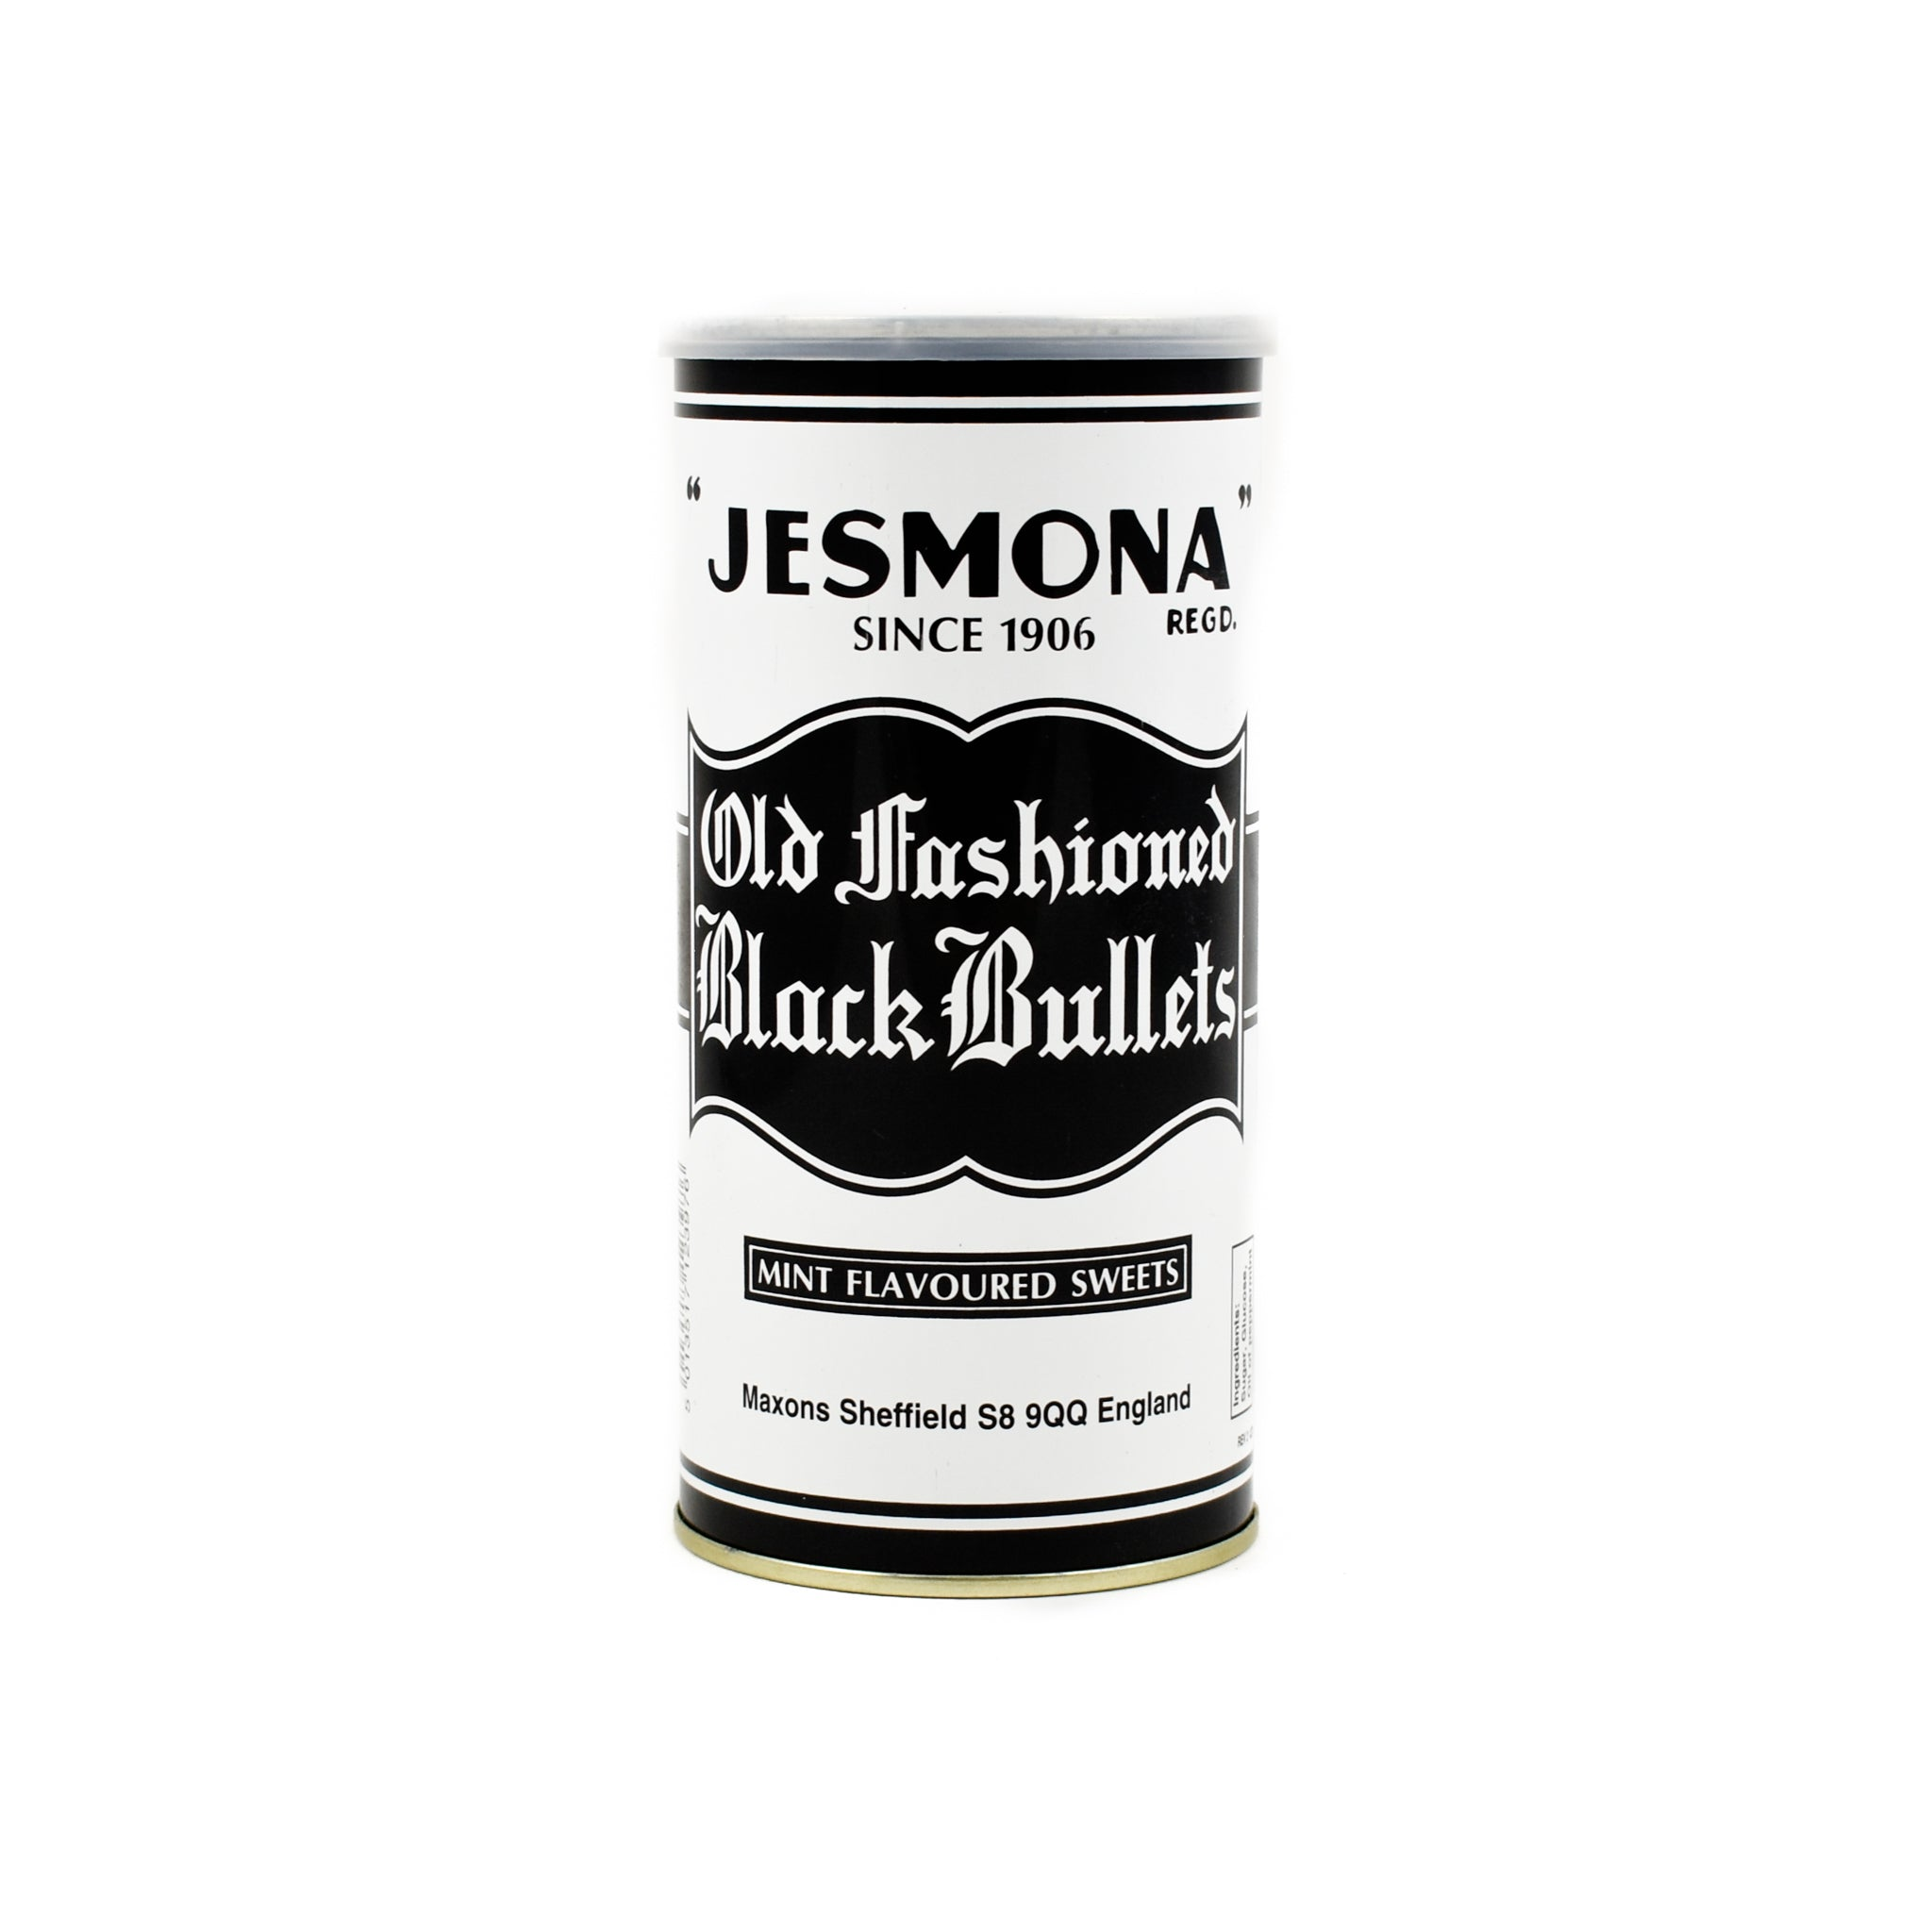 Jesmona Old Fashioned Black Bullets 500g Ingredients Chocolate Bars & Confectionery